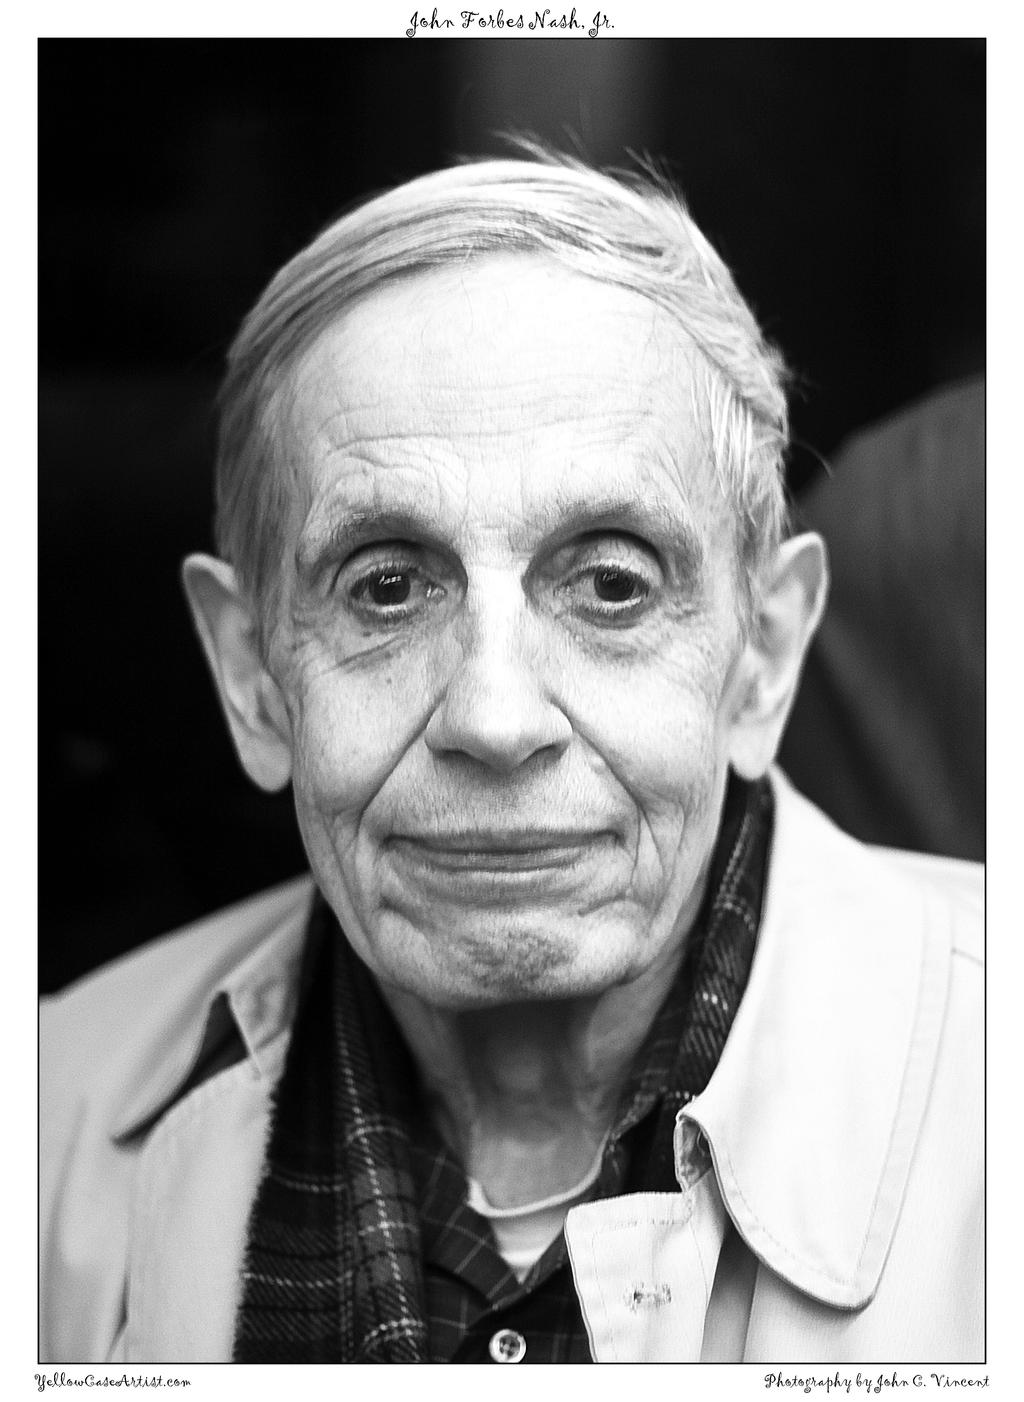 john nash jr News about john forbes nash jr commentary and archival information about john forbes nash jr from the new york times.